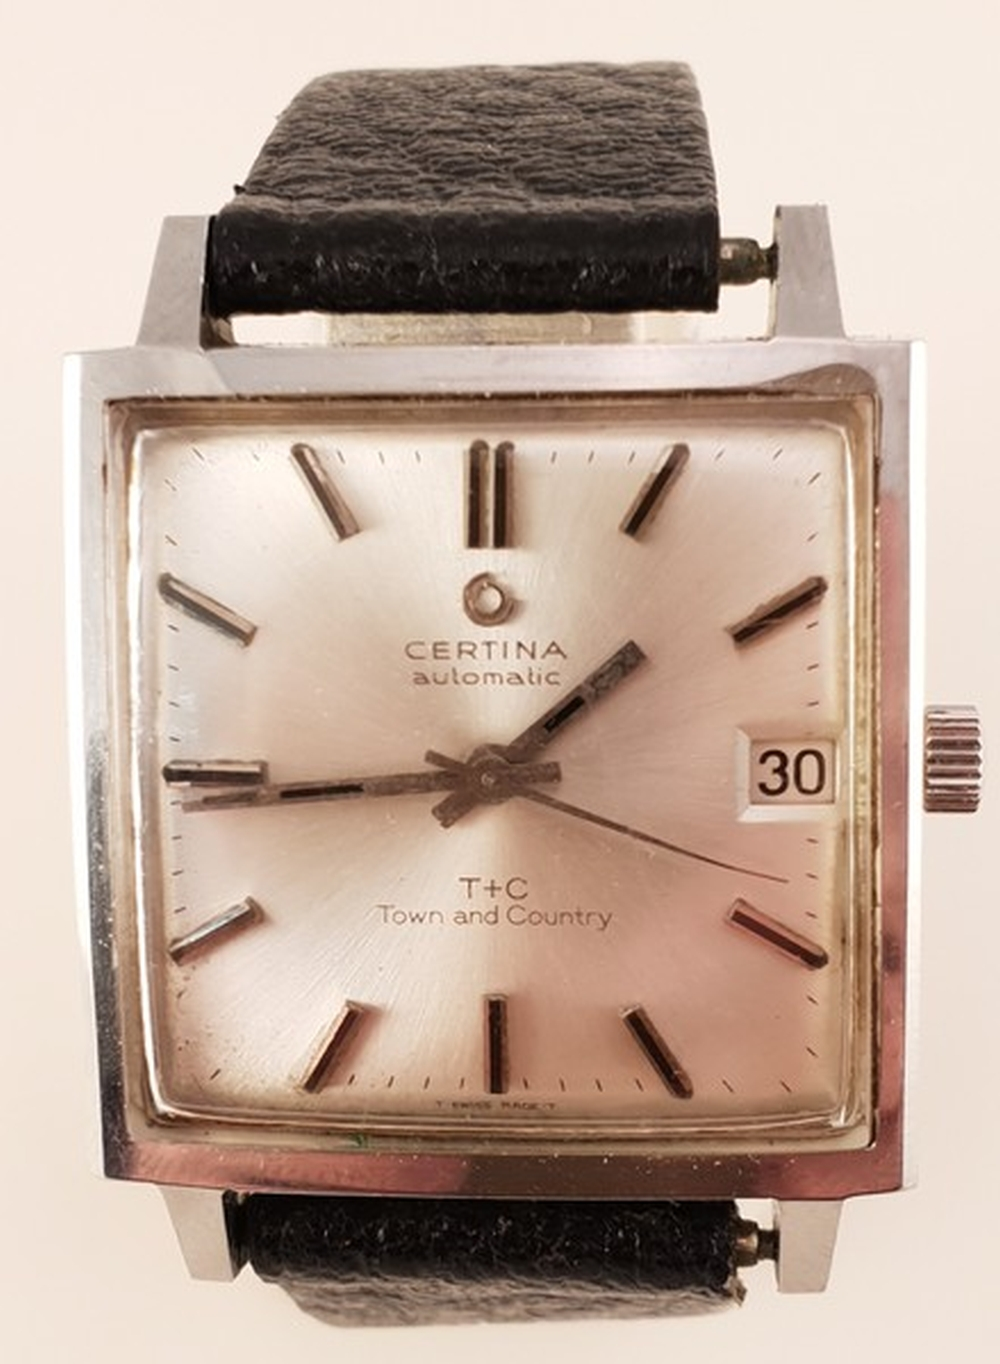 Certina Automatic, Model: T+C Town and Country  Herrenarmbanduhr, Stahl,